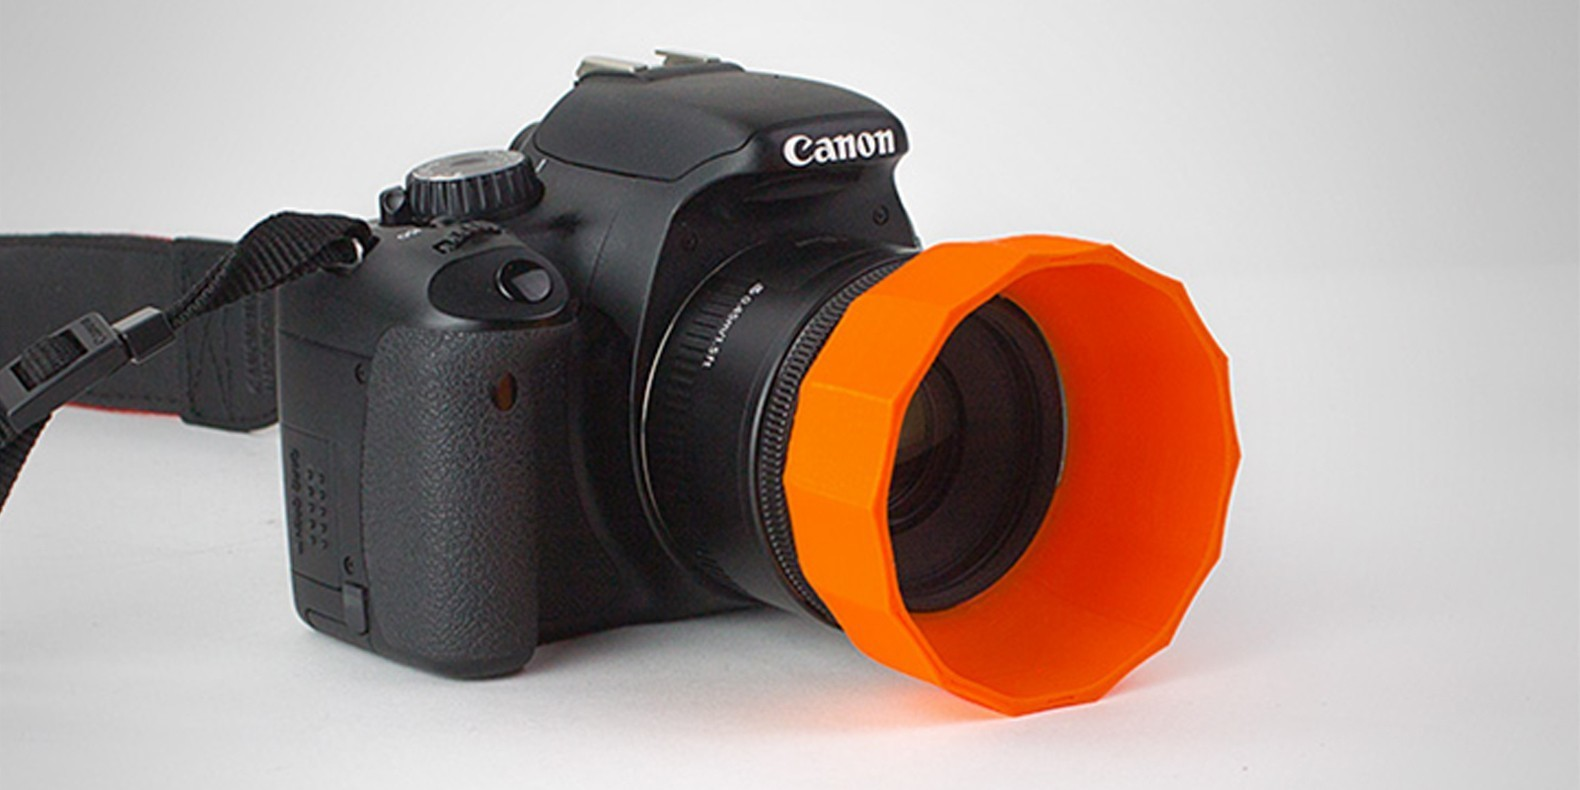 Find here a selection of the best camera related 3D models to make with a 3D printer